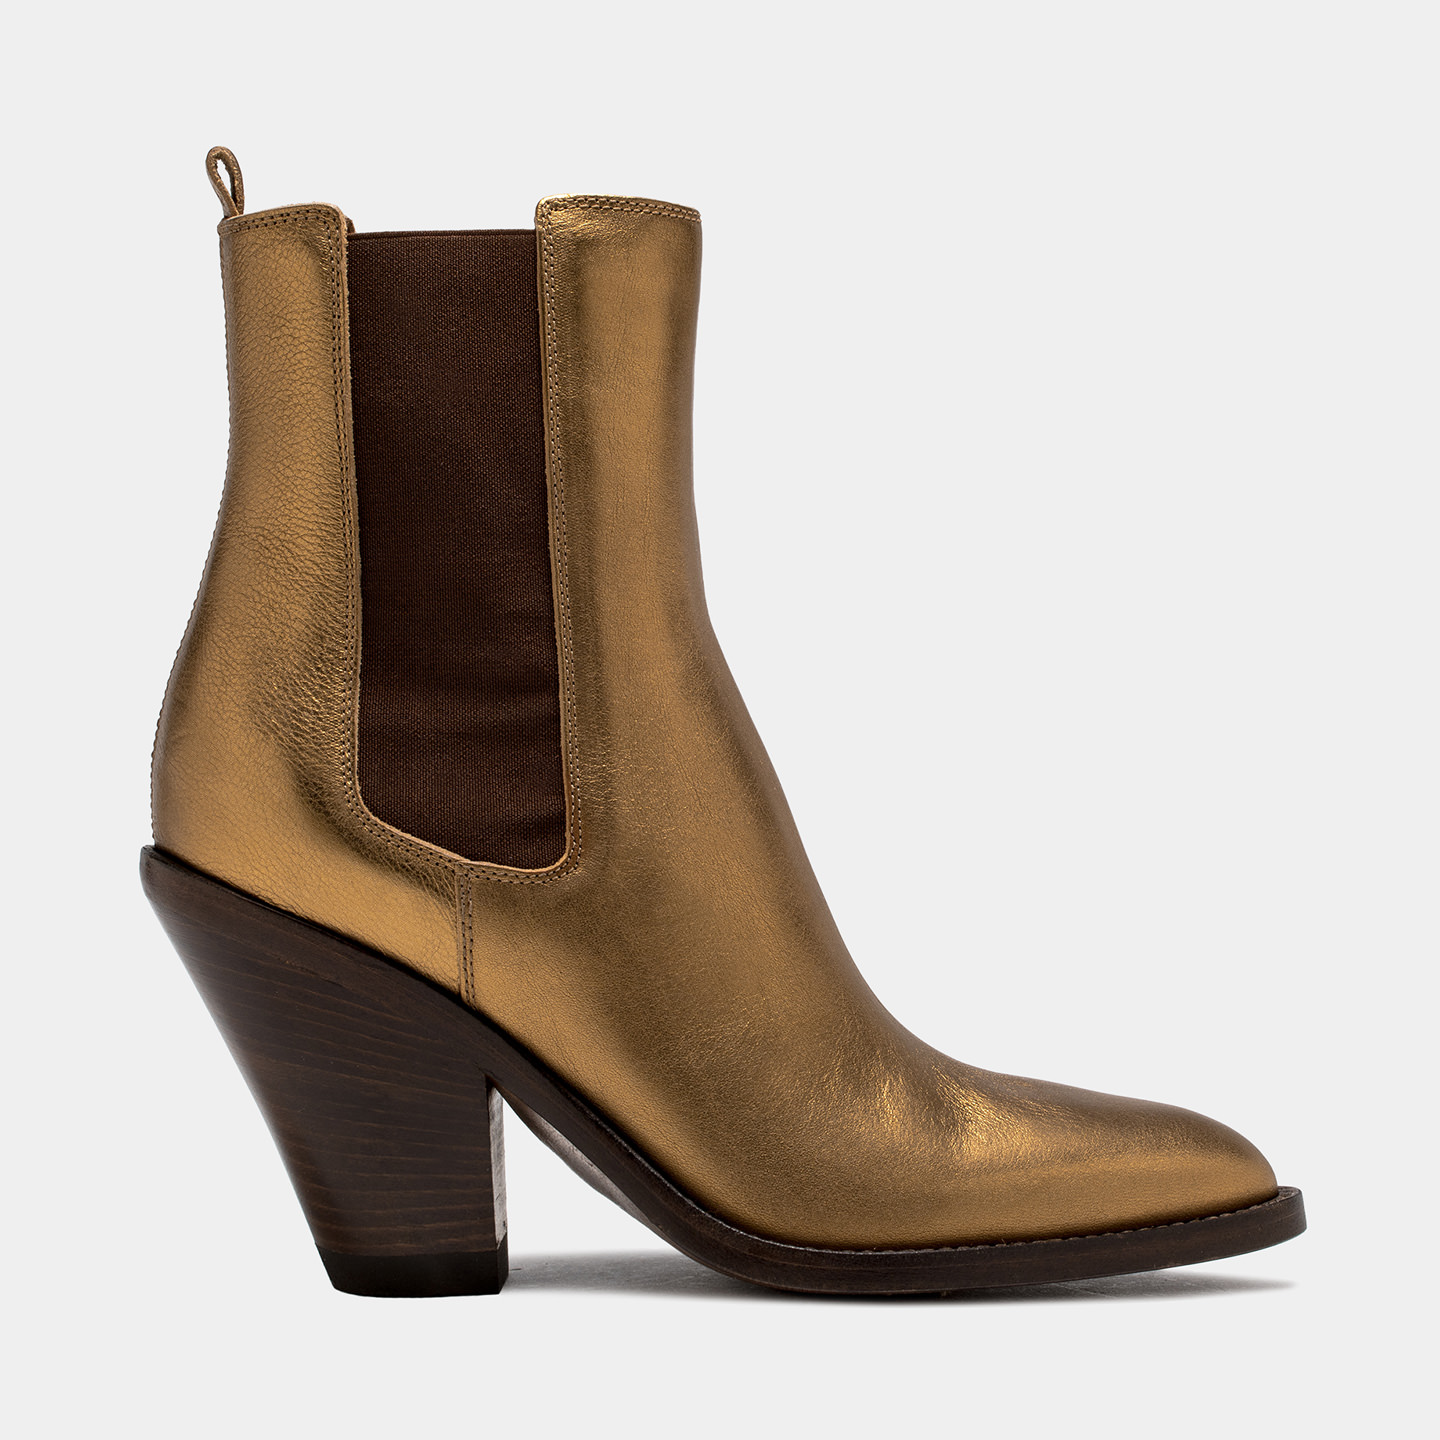 BUTTERO: JANE ANKLE BOOTS IN GOLD TONE LAMINATED LEATHER